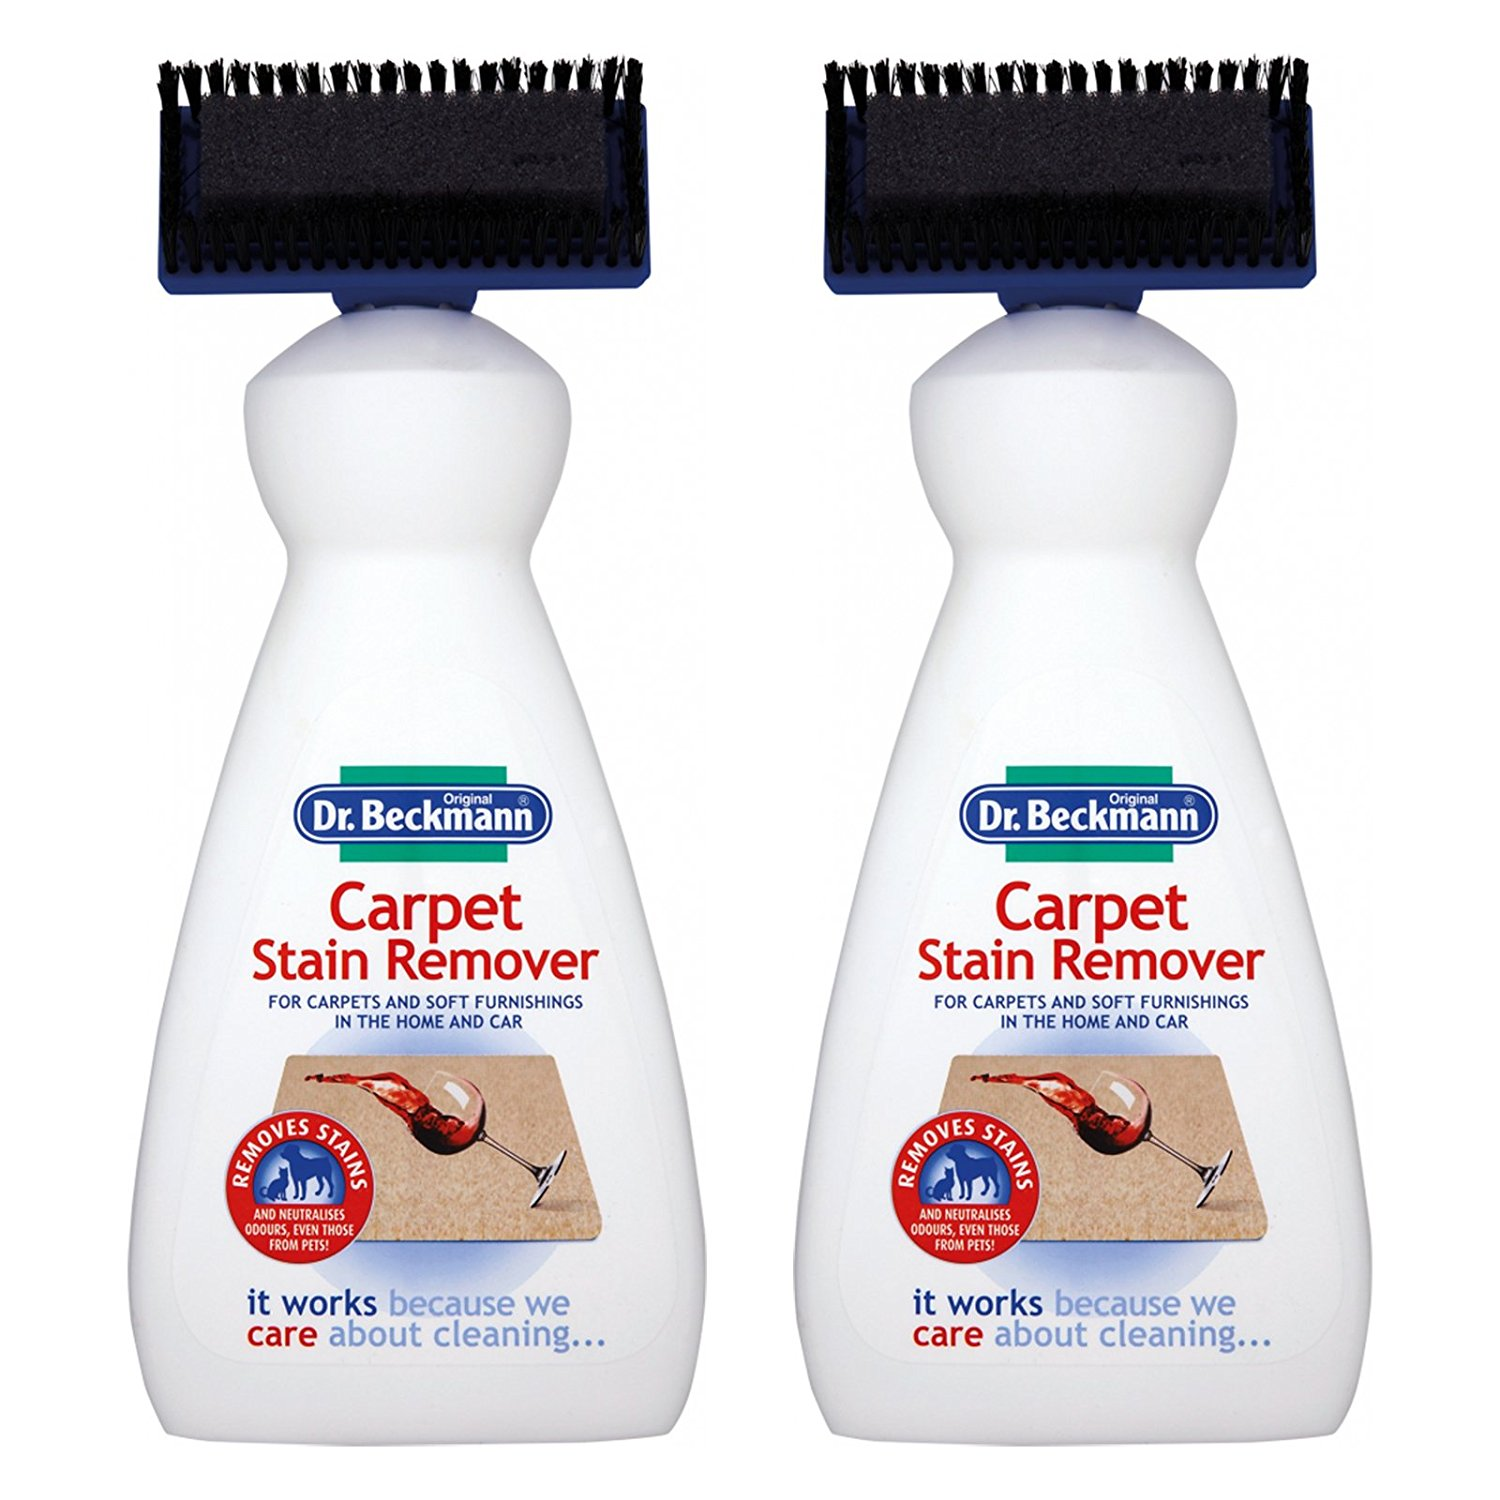 Dr. Beckmann Carpet Stain Remover